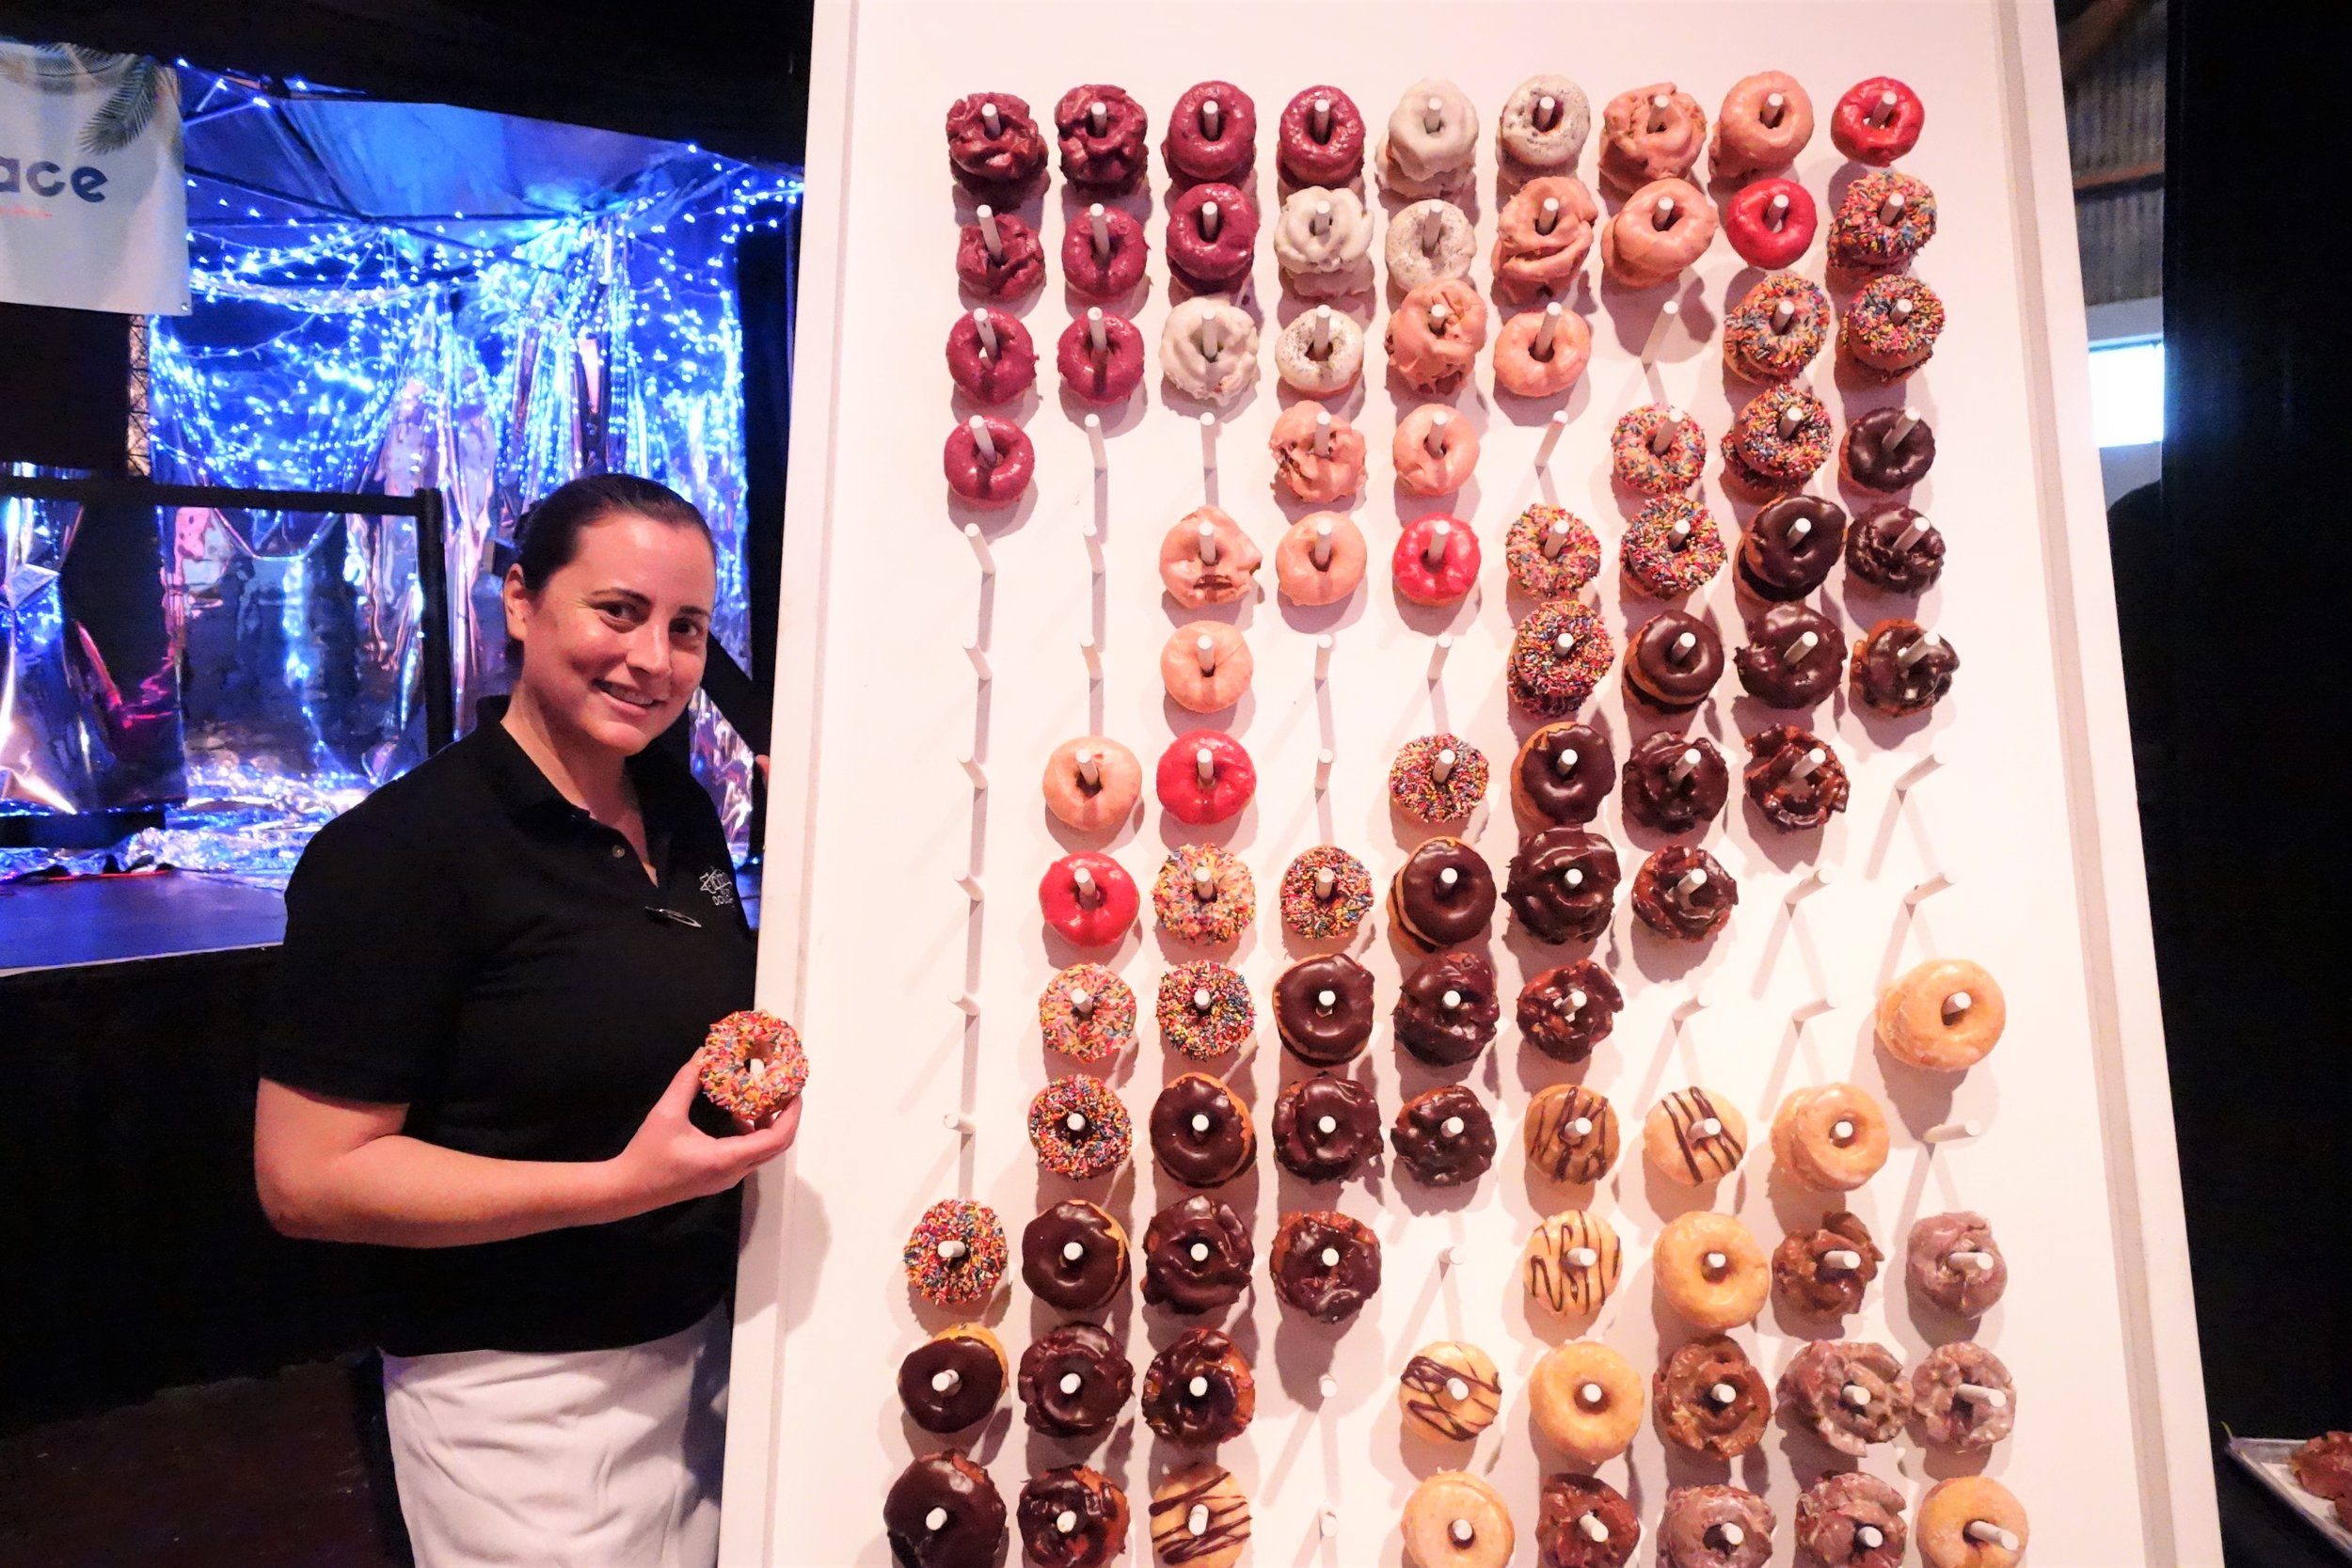 """Kristen from Johnny Doughnuts holds a """"Sprinkly Guys"""" Doughnut in front of their epic 10-foot doughnut wall at Sweet Spot Fest 2019"""